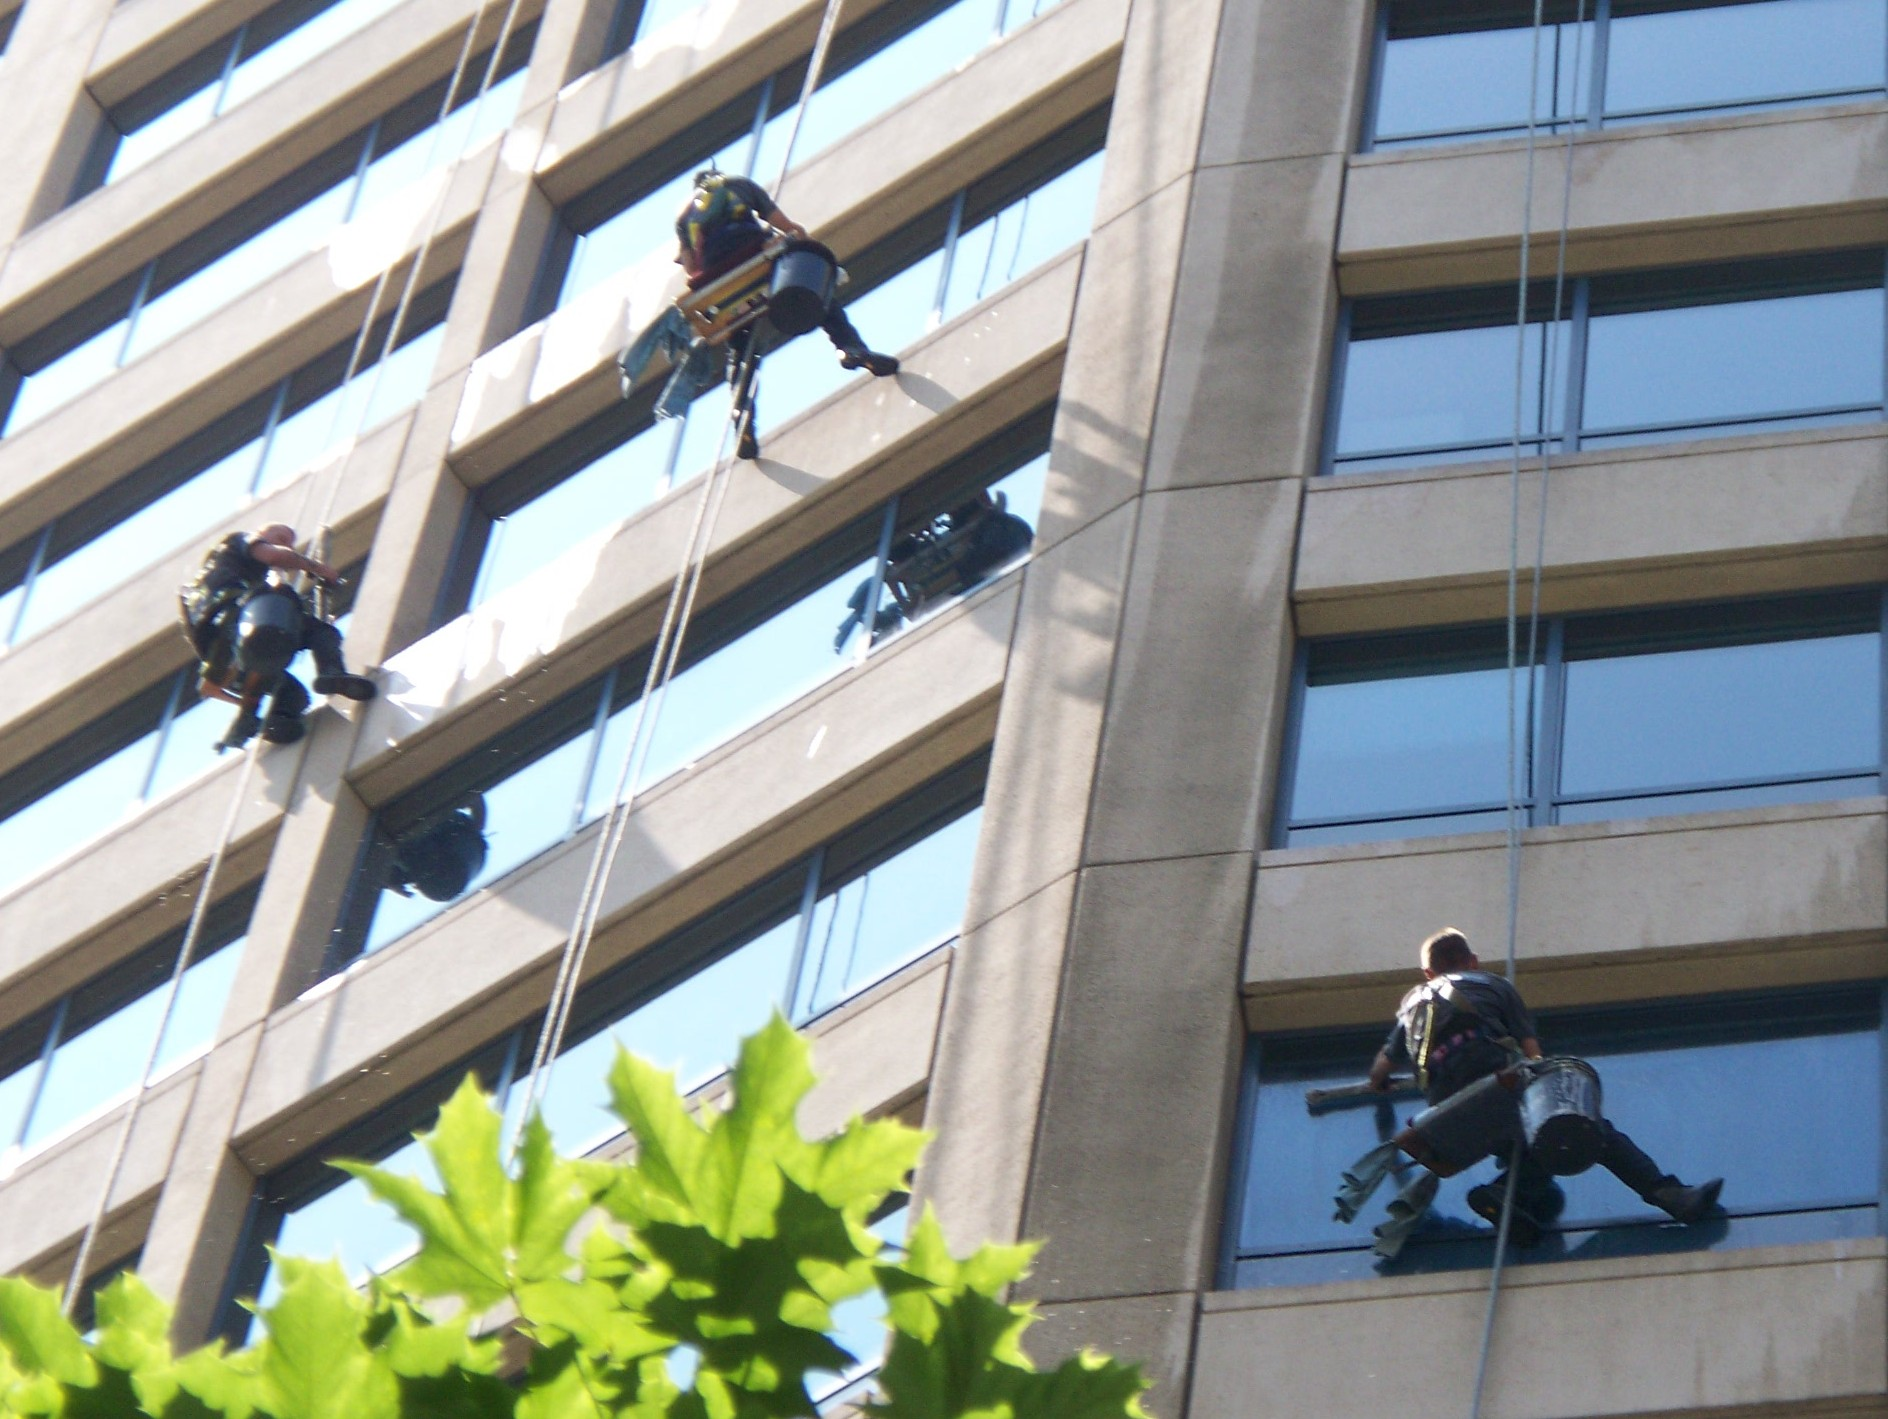 File:3 Window Washers - Cleaning the Westlake Center Office Tower.jpg